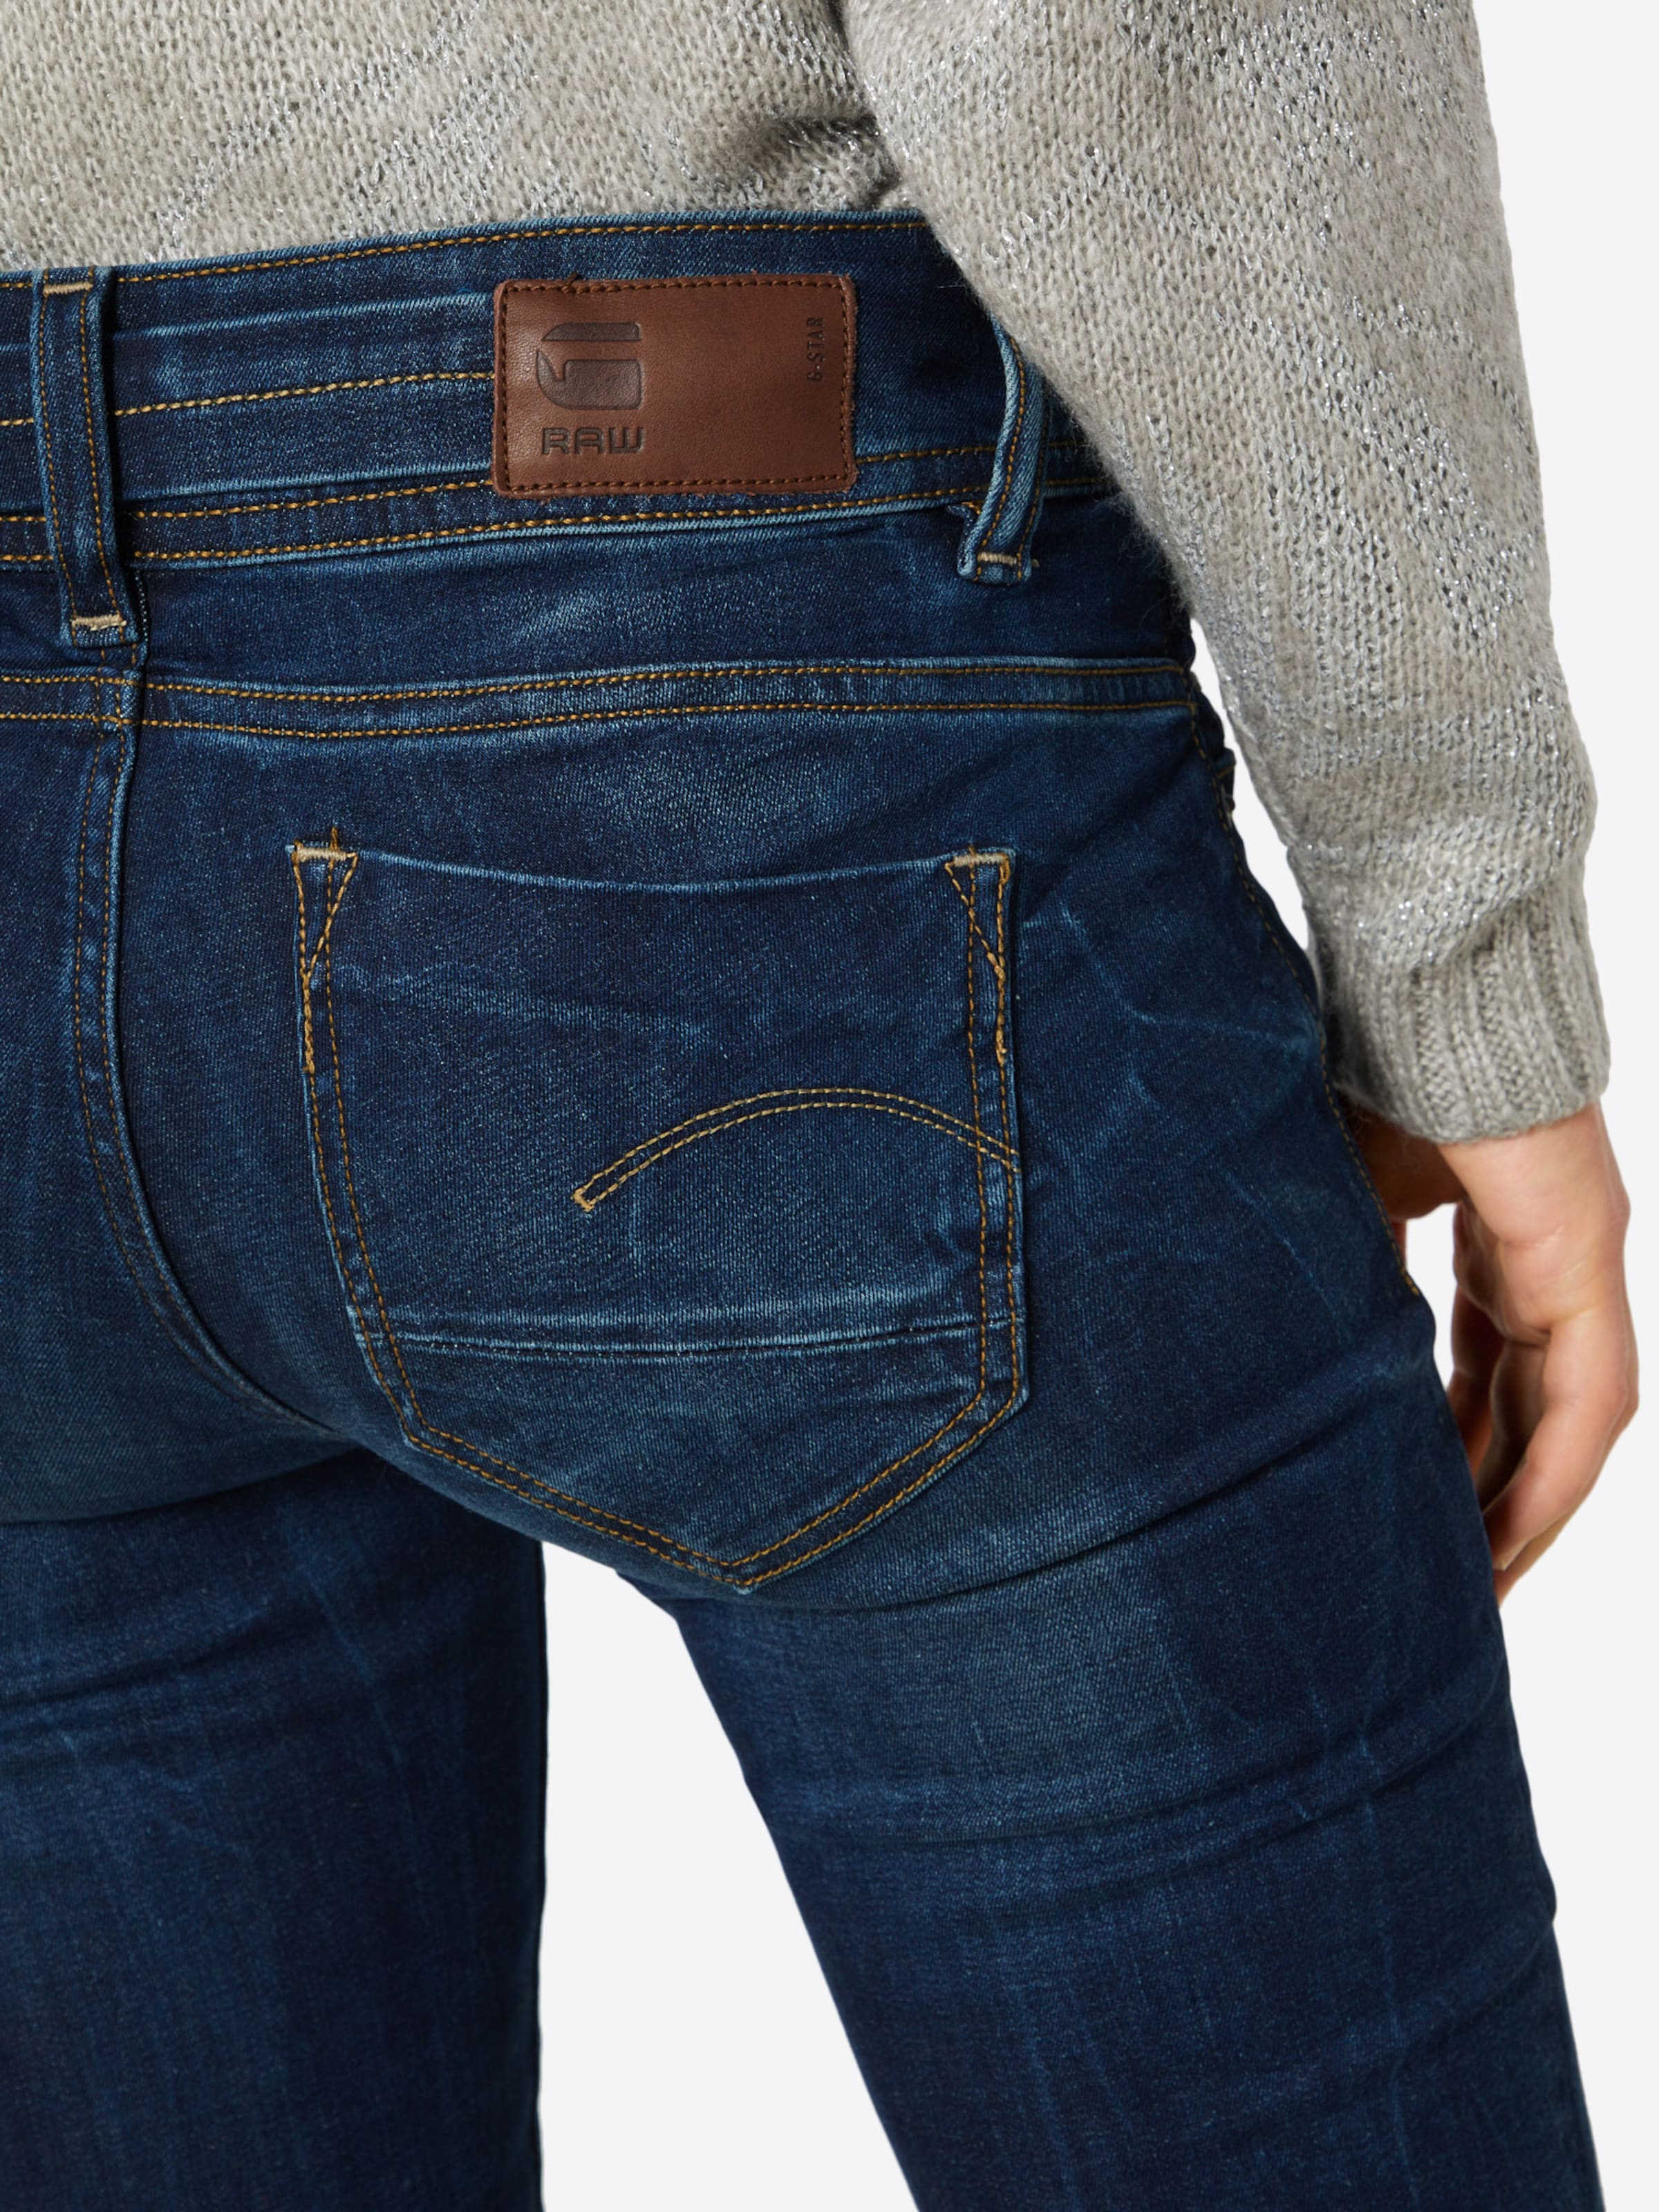 star Mid Saddle Bootleg' Raw In G 'midge Jeans Blau dhsQtrC